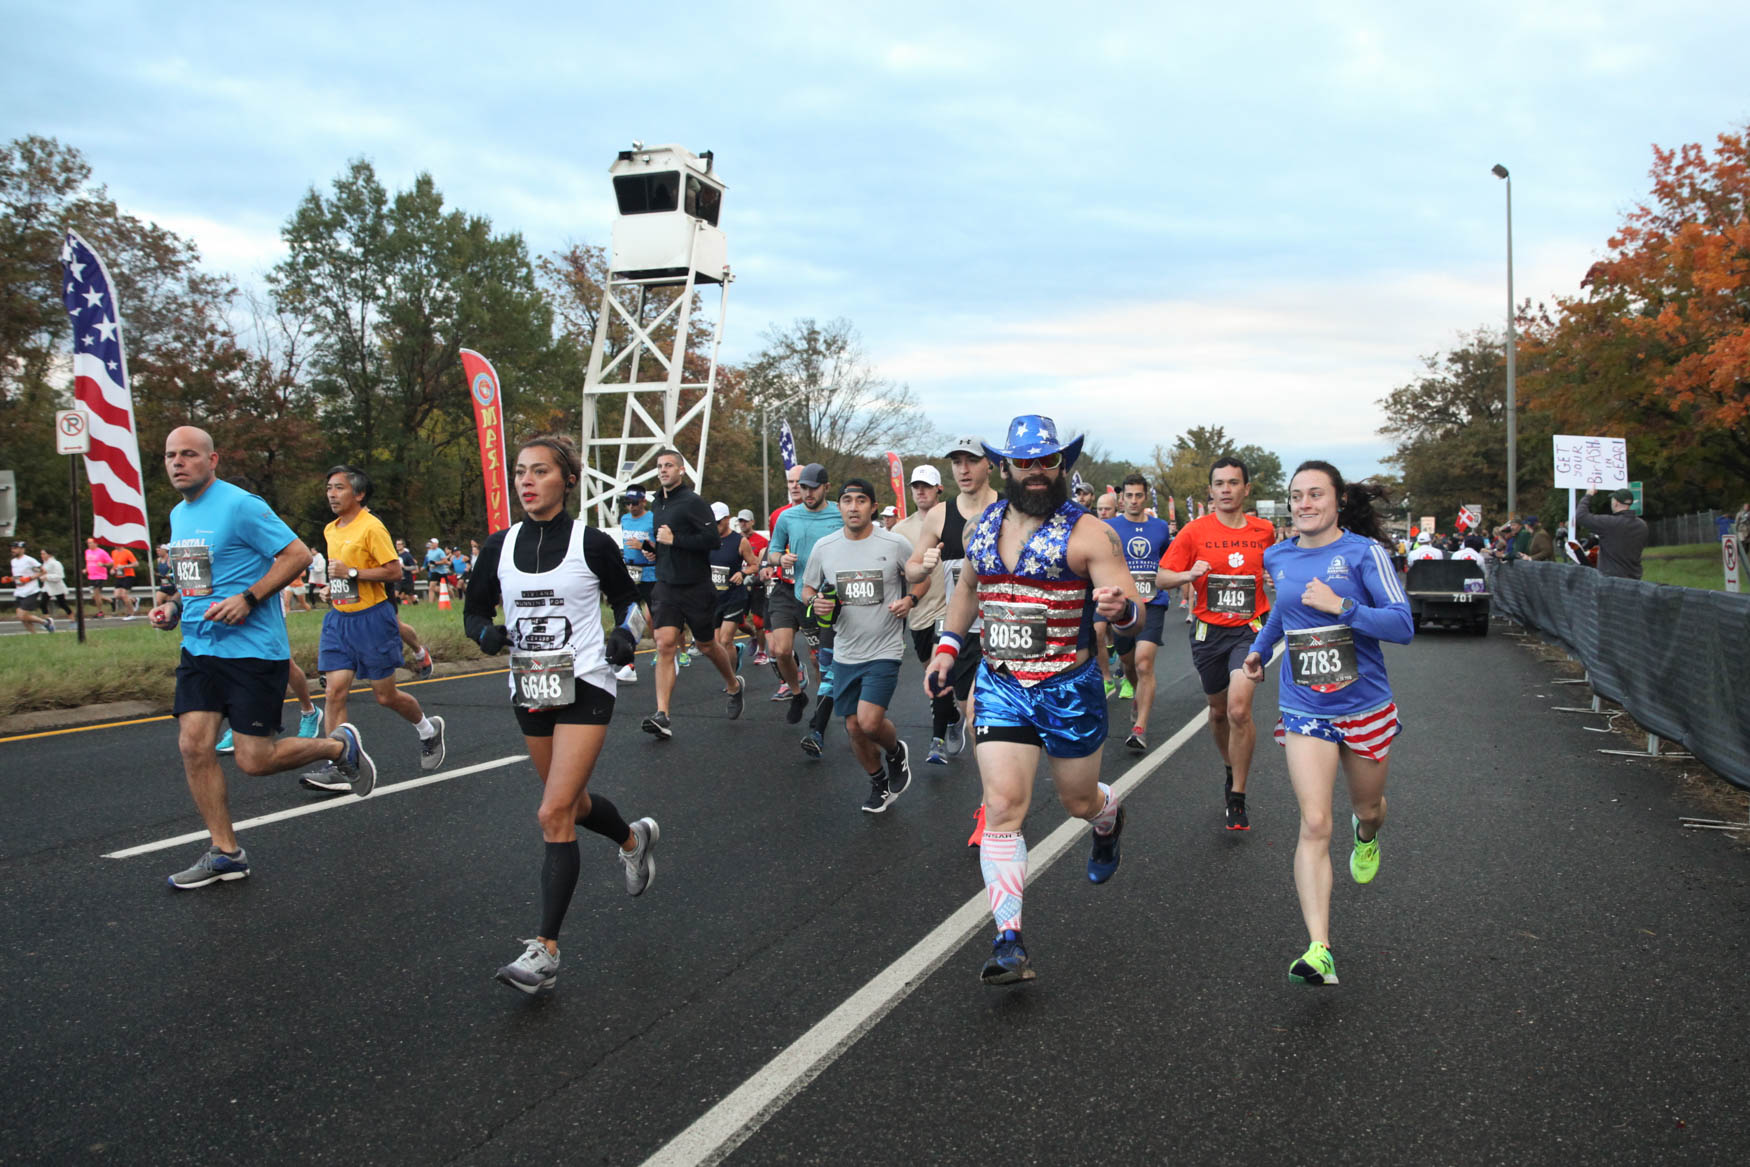 Thousands of athletes from around the world ran, wheeled and jogged their way over a 26.2 mile course for the 43rd Marine Corps Marathon on October 28. The course spanned from The Pentagon to D.C., ultimately concluding at the base of the Iwo Jima Memorial. The Marine Corps Marathon is only open to 30,000 runners, but the event includes a 10k and 5k race. (Amanda Andrade-Rhoades/DC Refined)